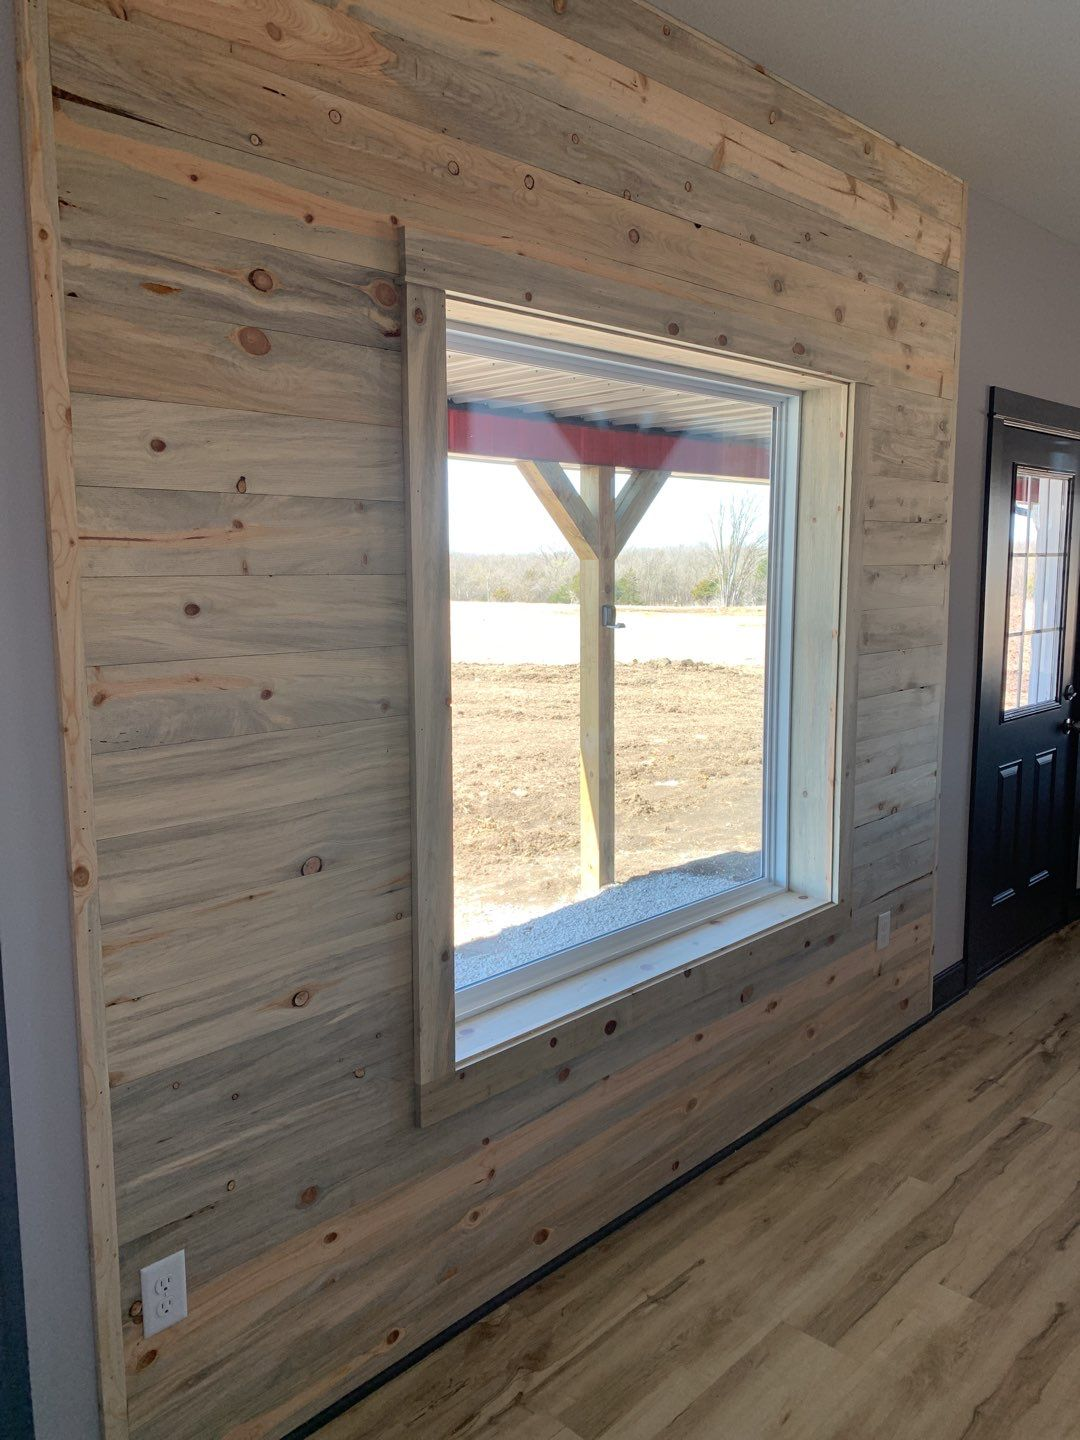 Picture Window with Beetle Kill Pine Paneling